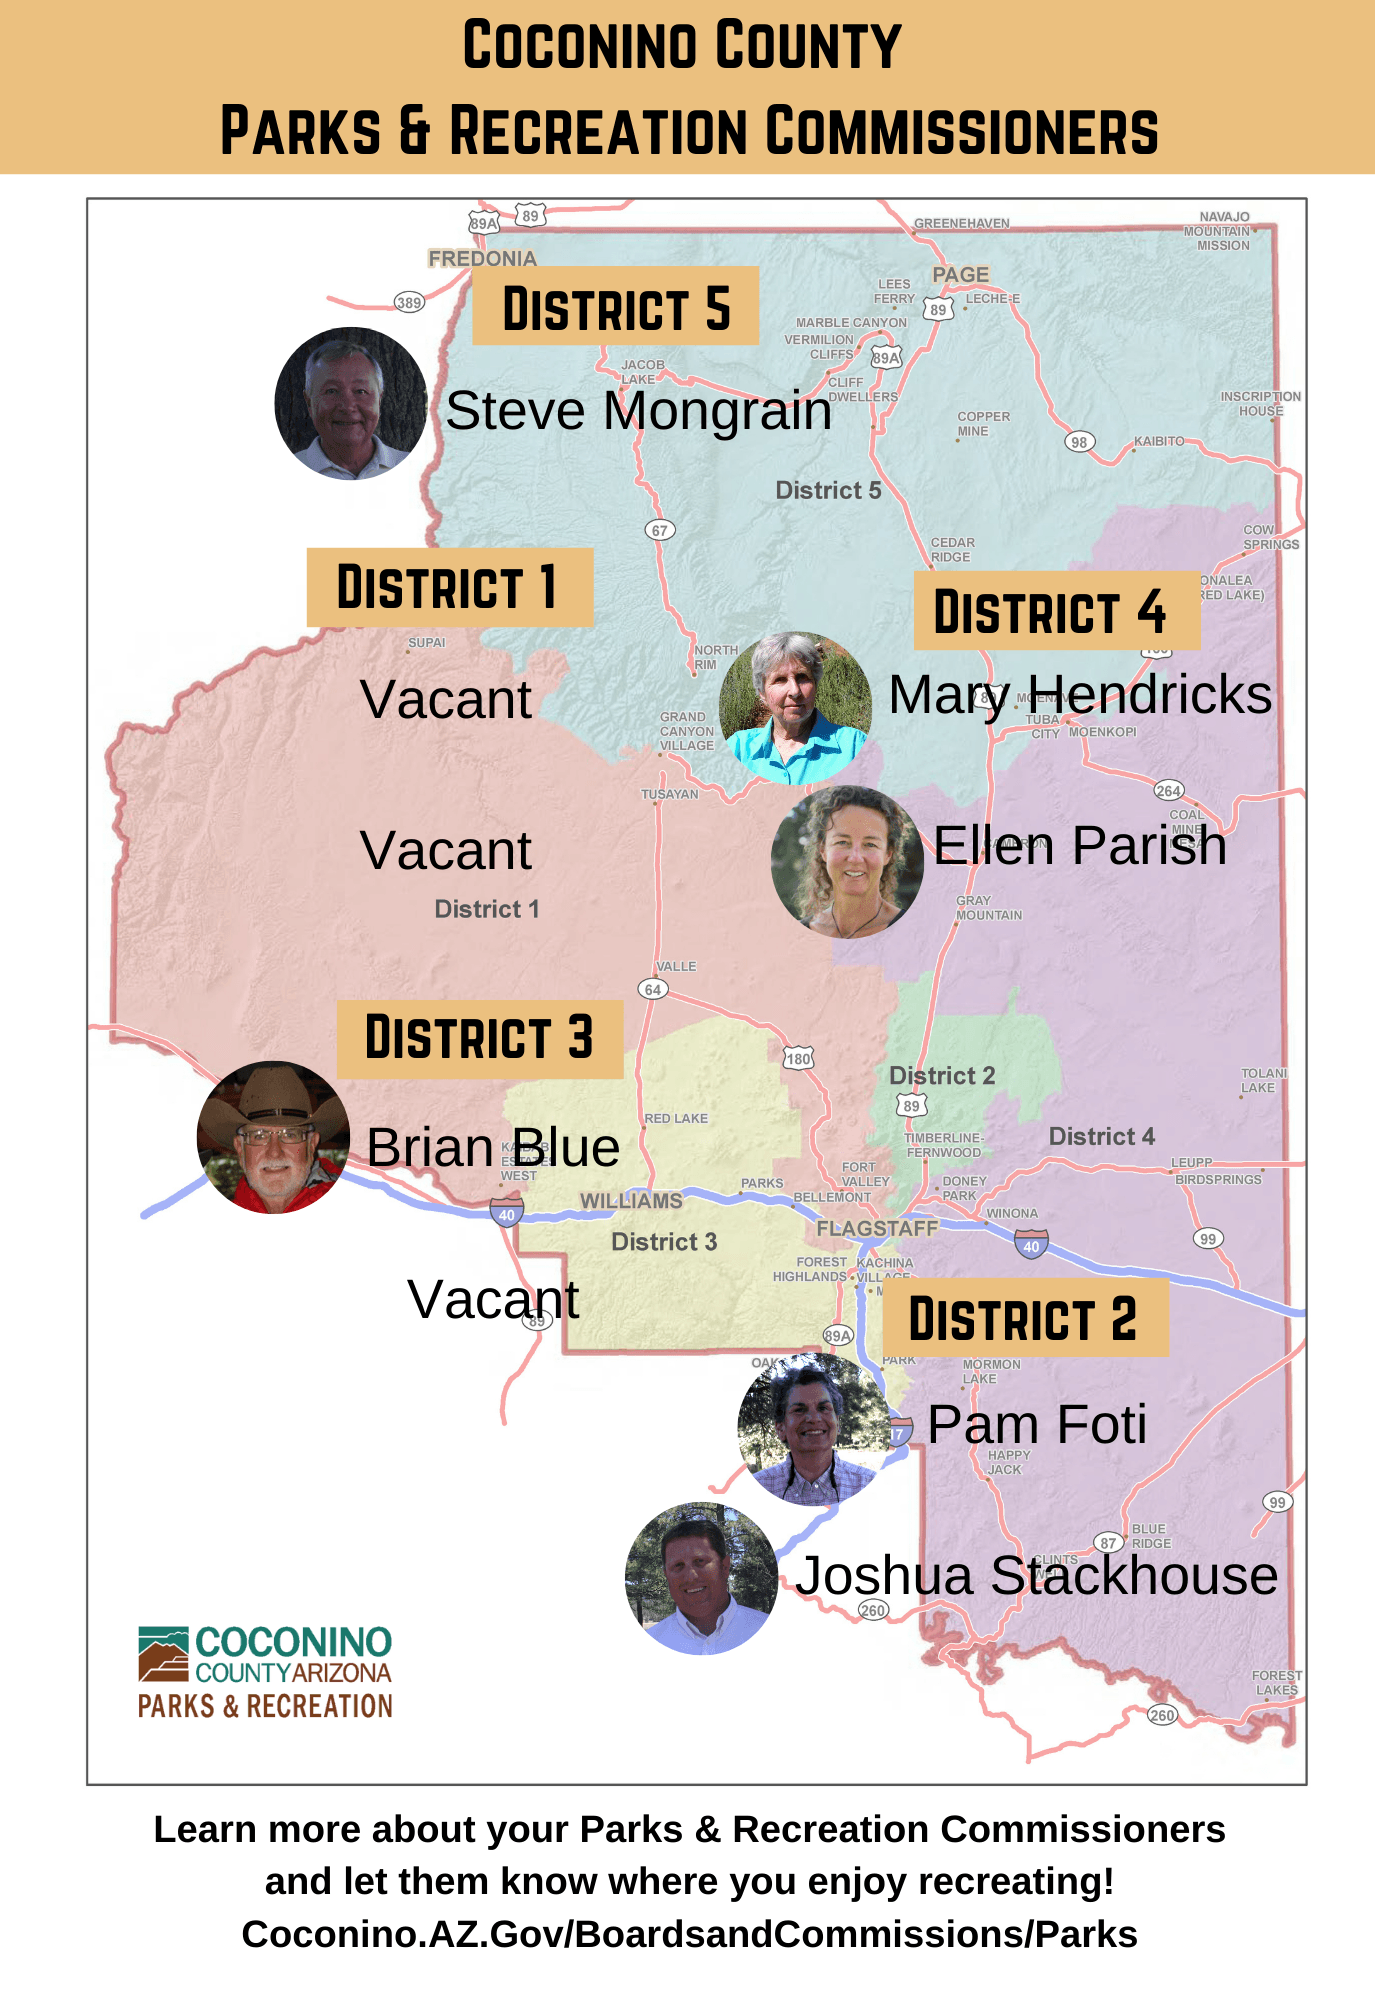 CC PRC members and districts